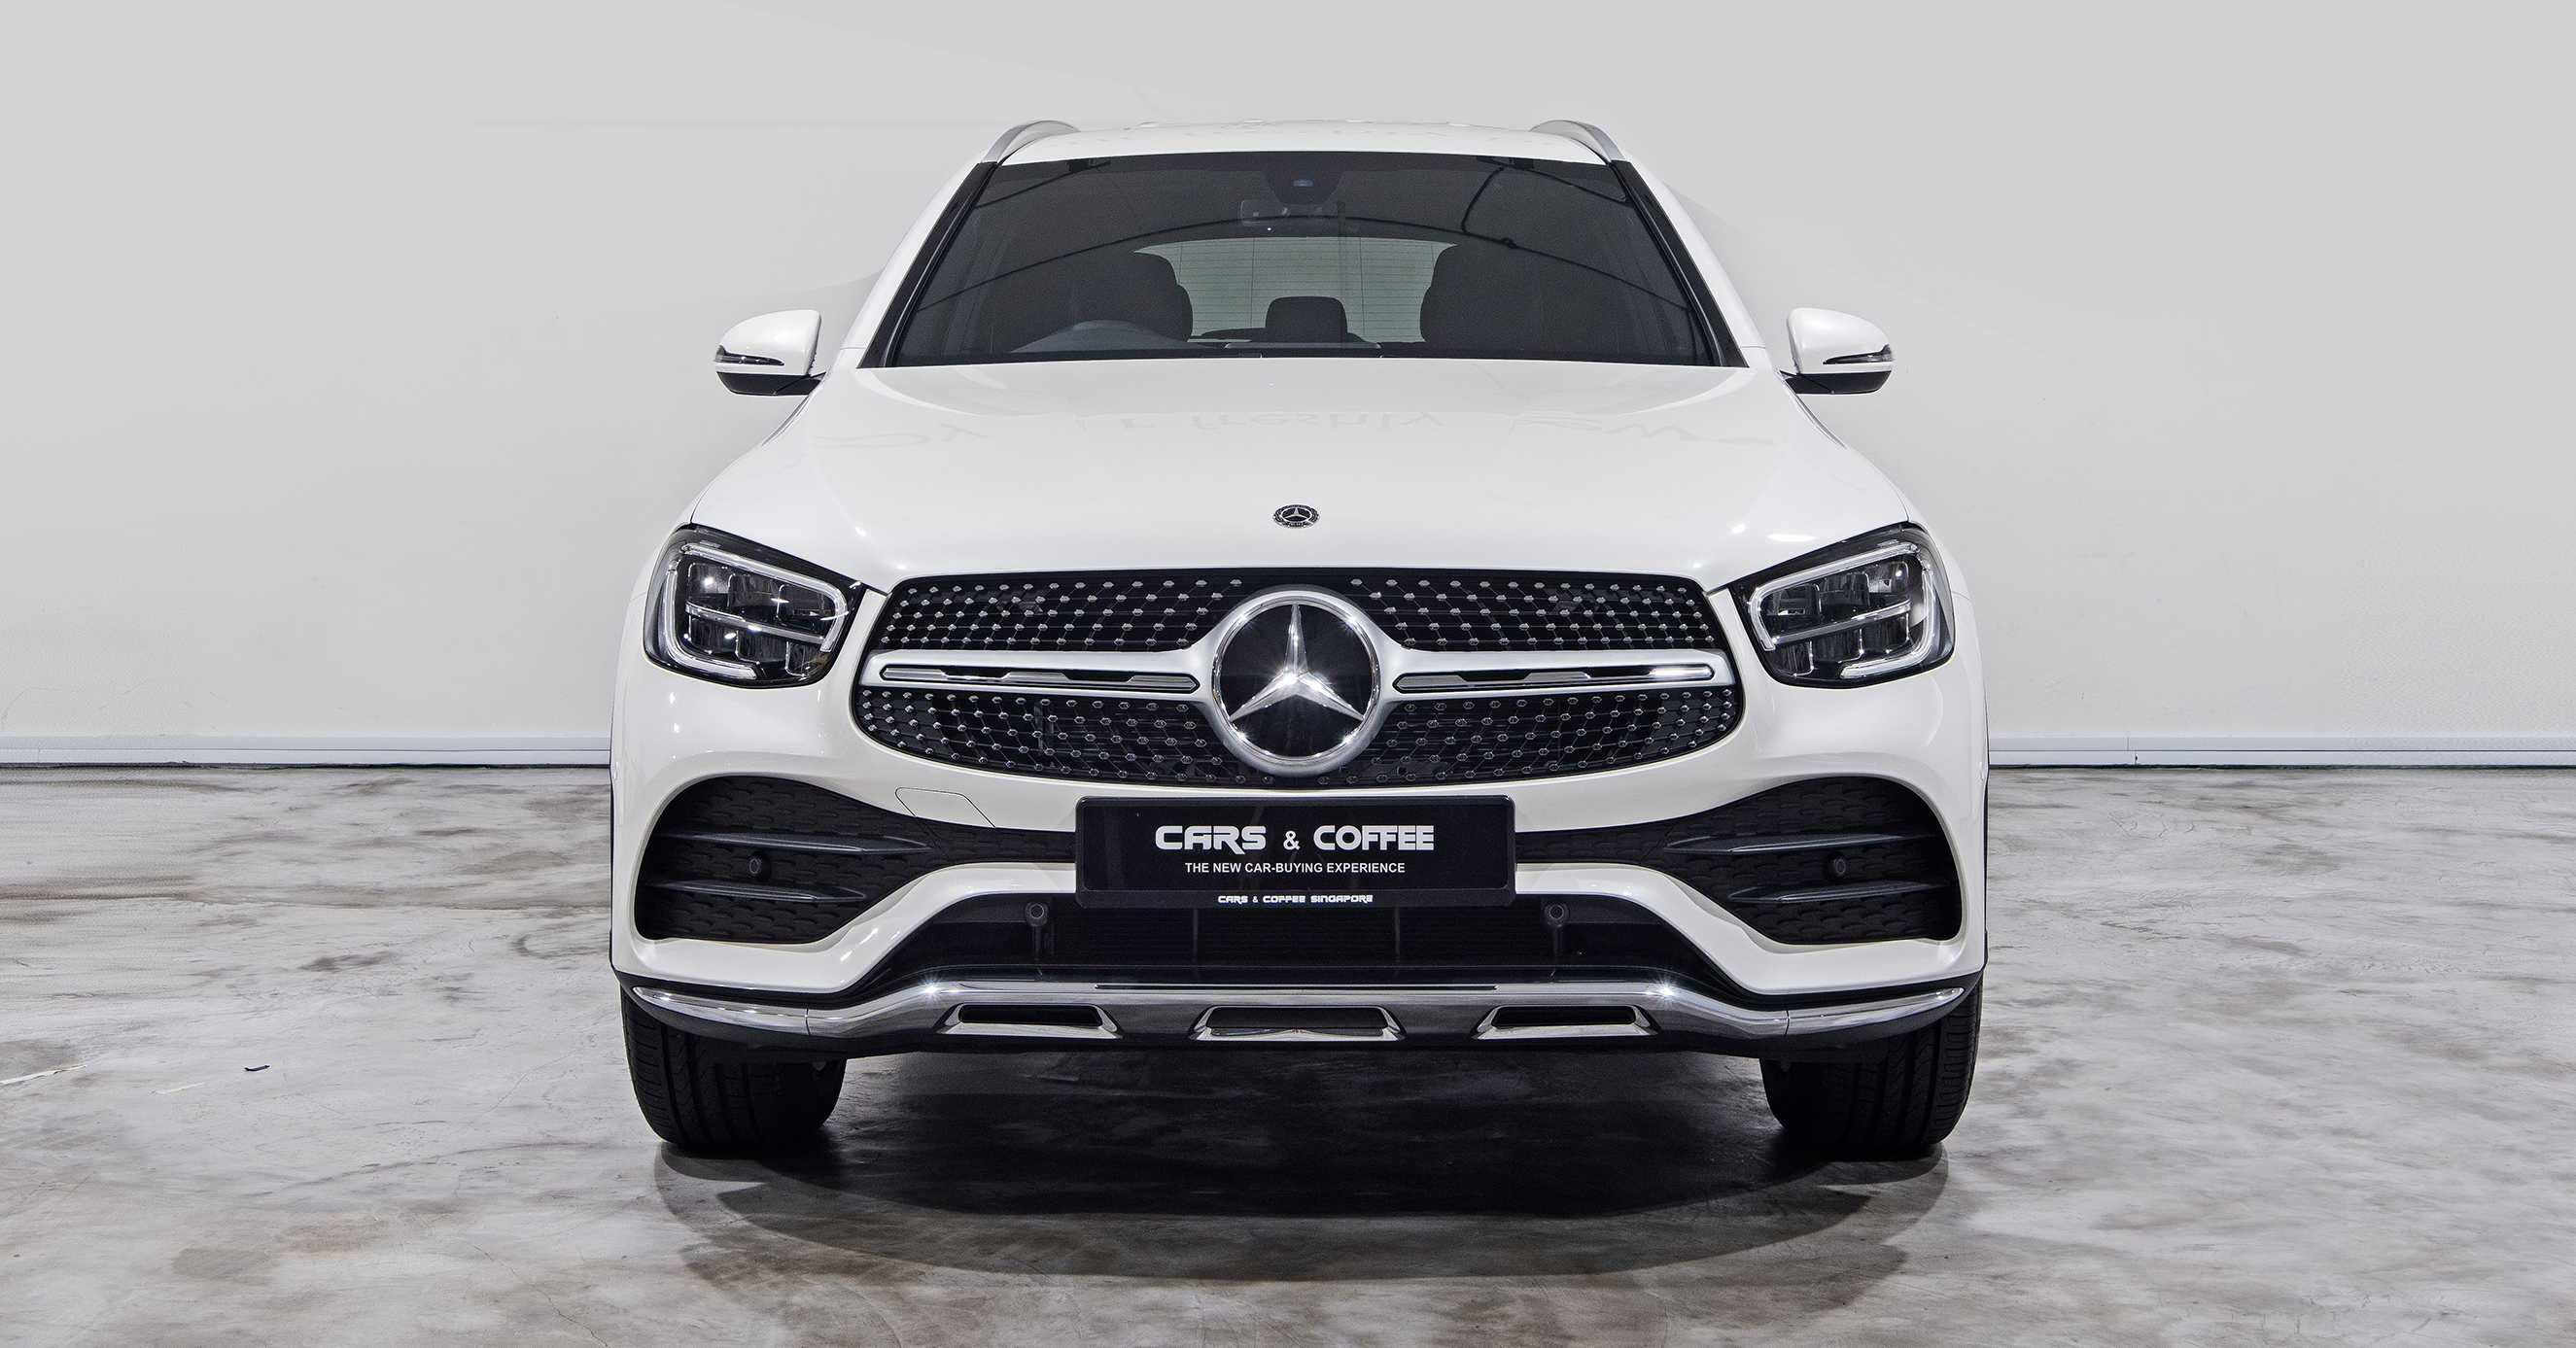 Benchmarks can't be benched. So the standard-setting GLC SUV enters 2020 with sleeker style and smarter tech. All-LED lighting helps you see and be seen. Fresh details, clean lines and sporty proportions make sure you look great, too.